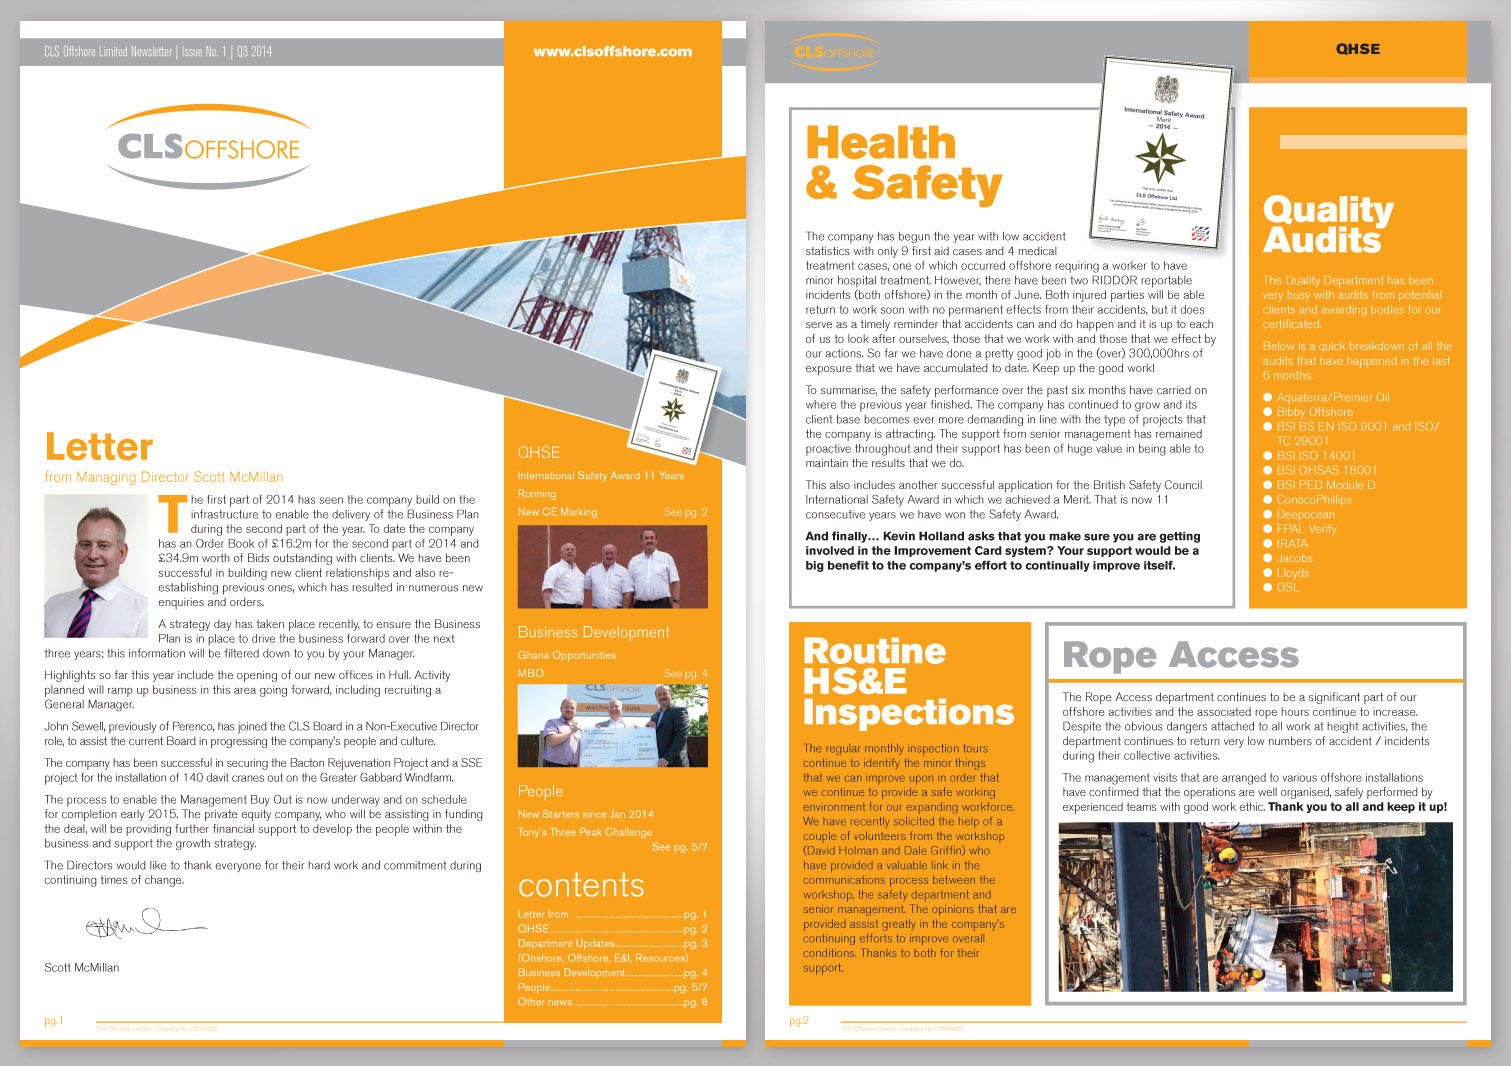 CLS Offshore Limited Newsletter Pages 1 and 2